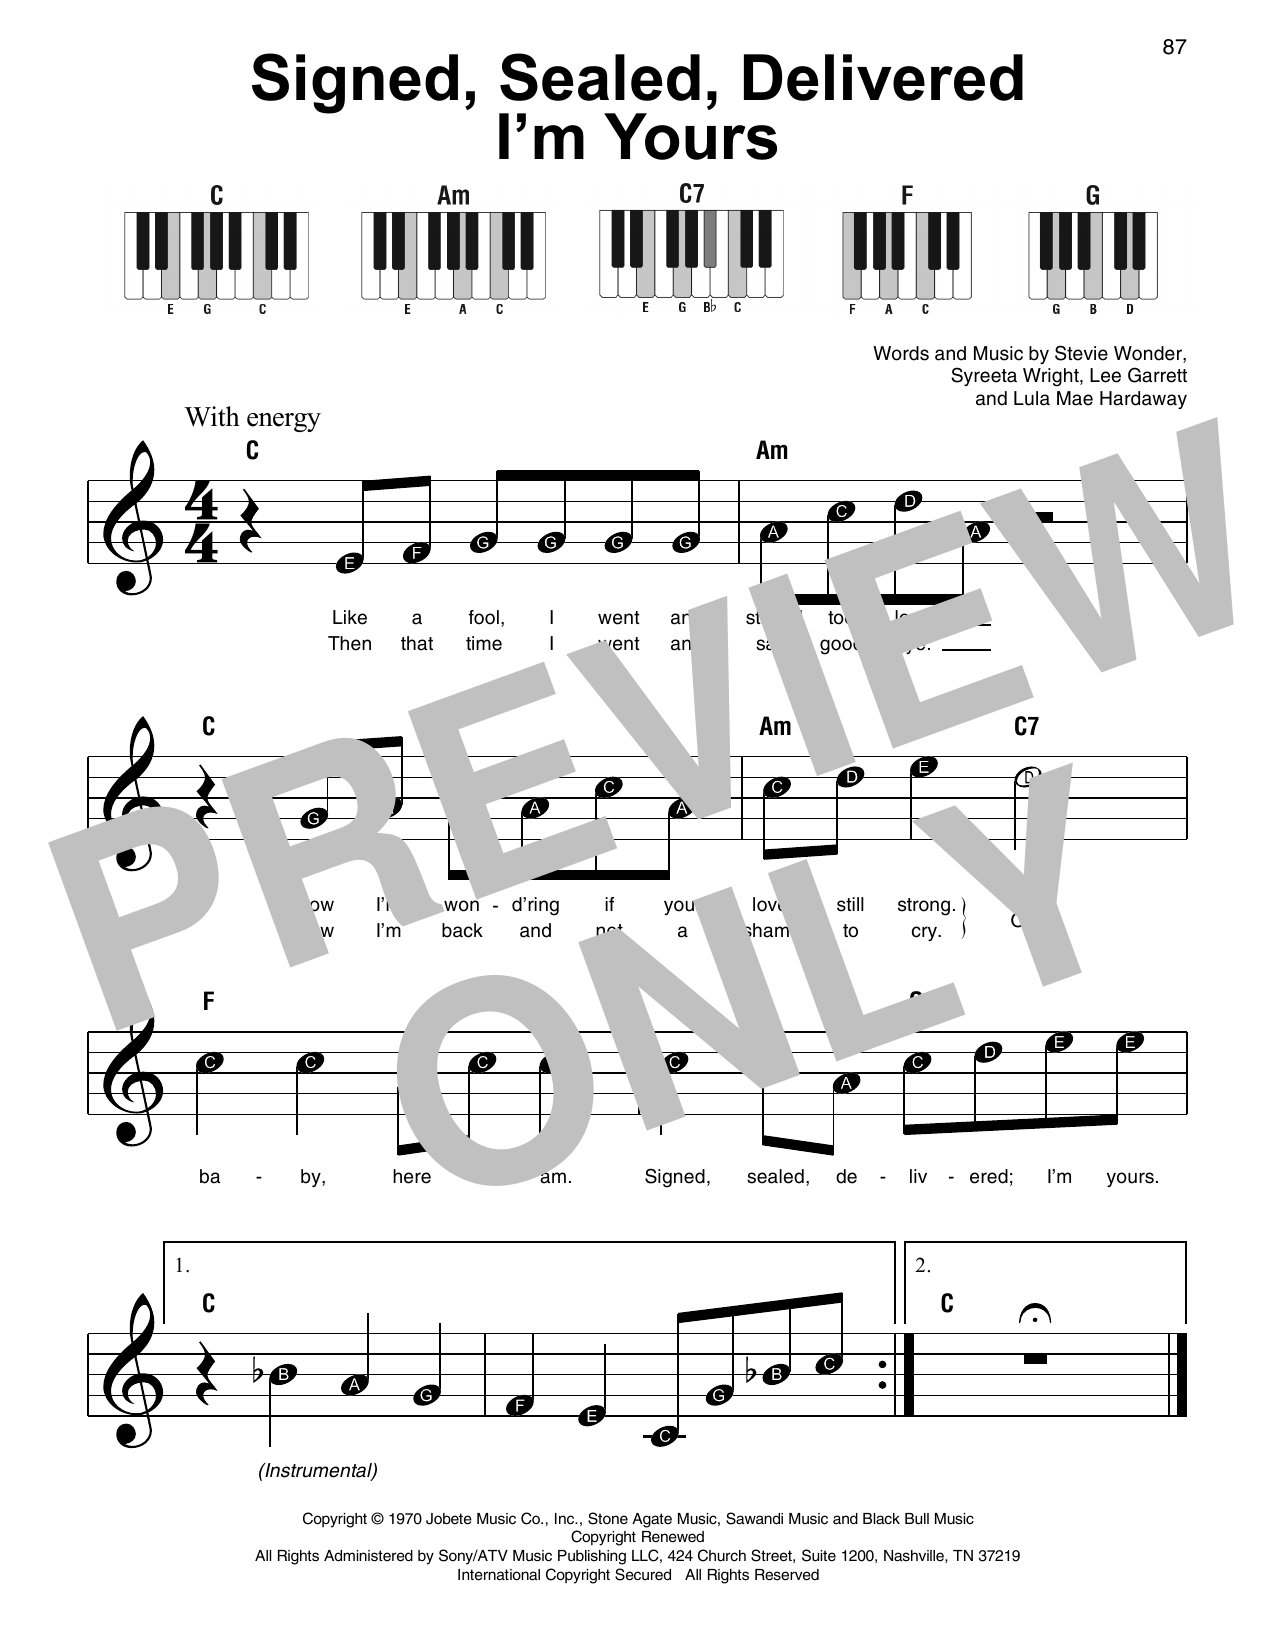 Signed, Sealed, Delivered I'm Yours Sheet Music